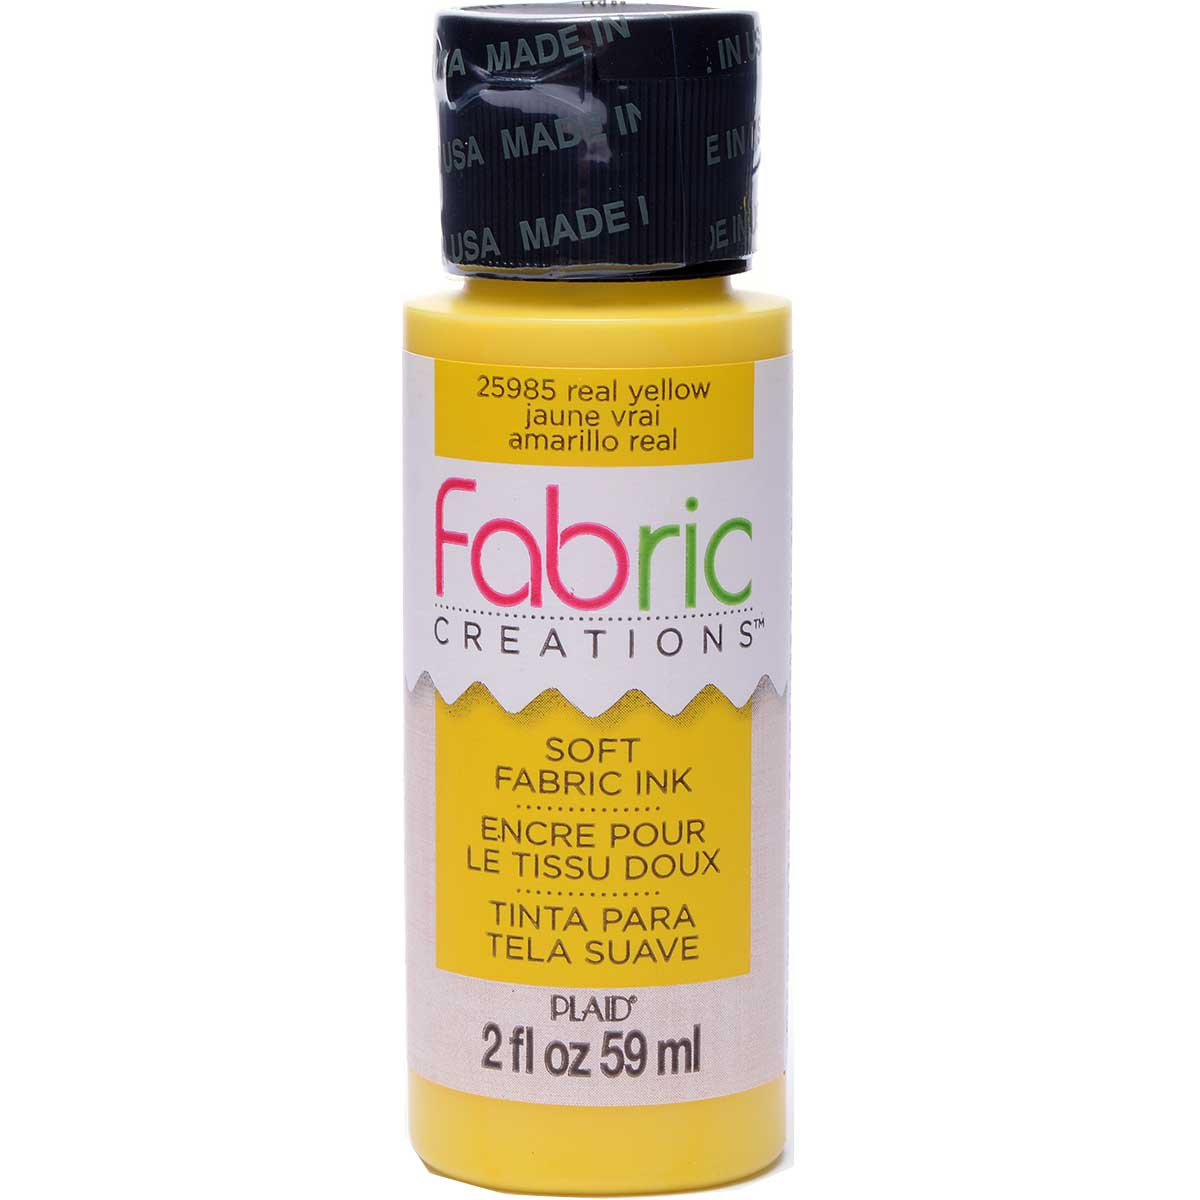 Fabric Creations™ Soft Fabric Inks - Real Yellow, 2 oz.